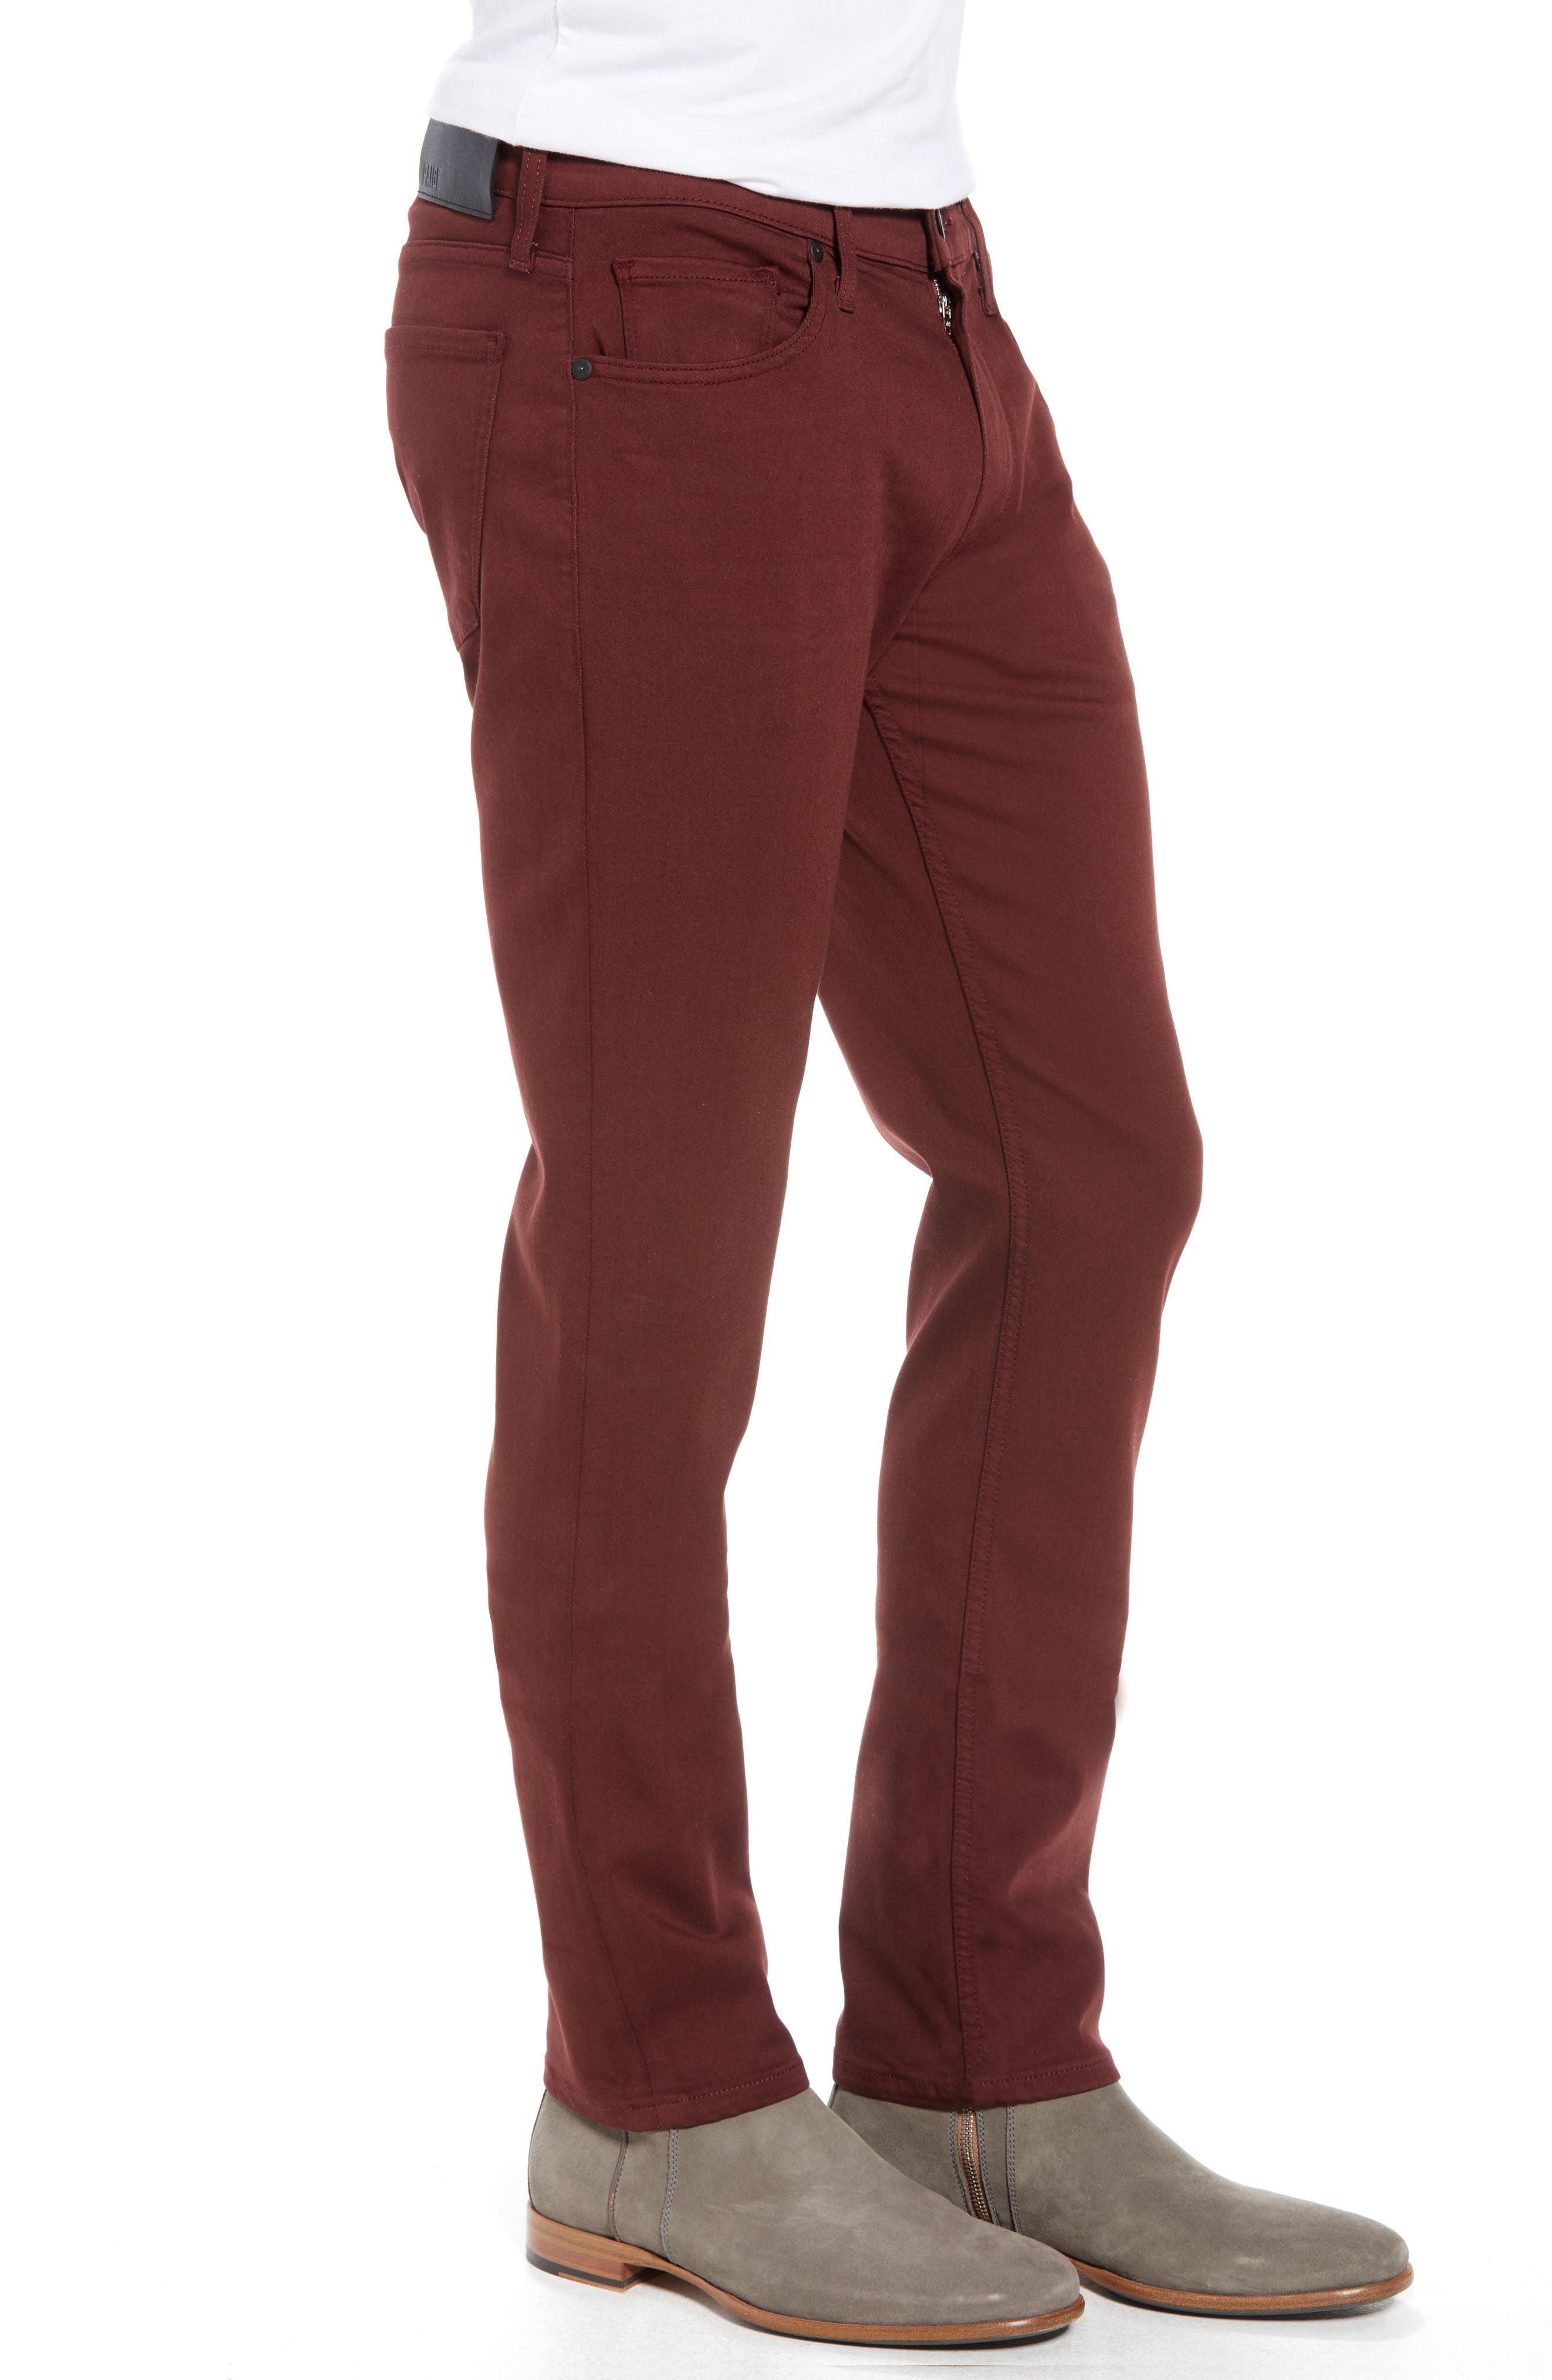 Transcend - Federal Slim Straight Leg Jeans,                             Alternate thumbnail 3, color,                             RUSTIC WINE